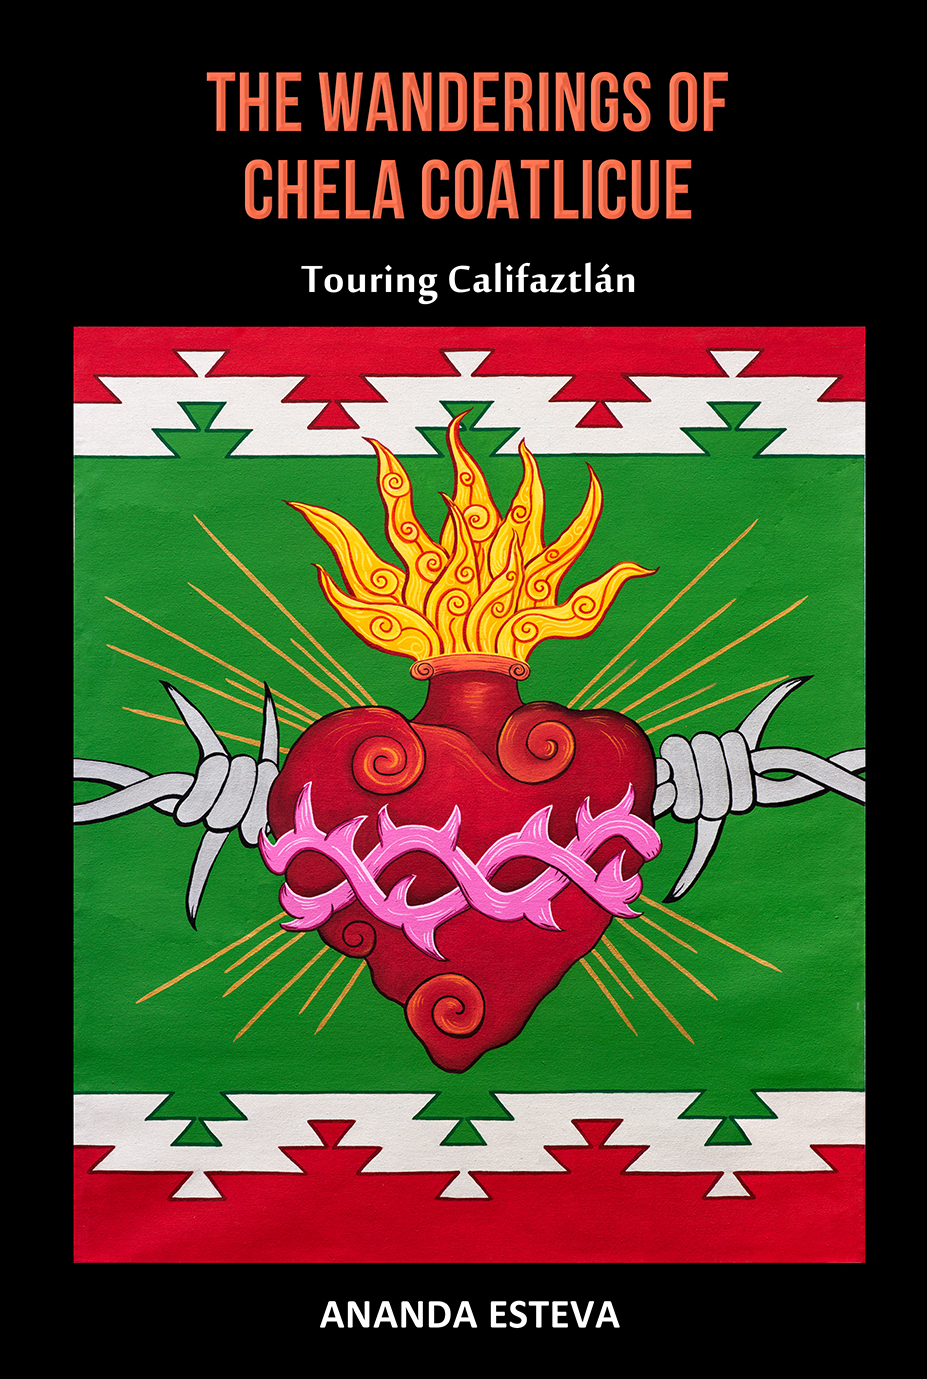 The Wanderings of Chela Coatlicue: Touring Califatzlan